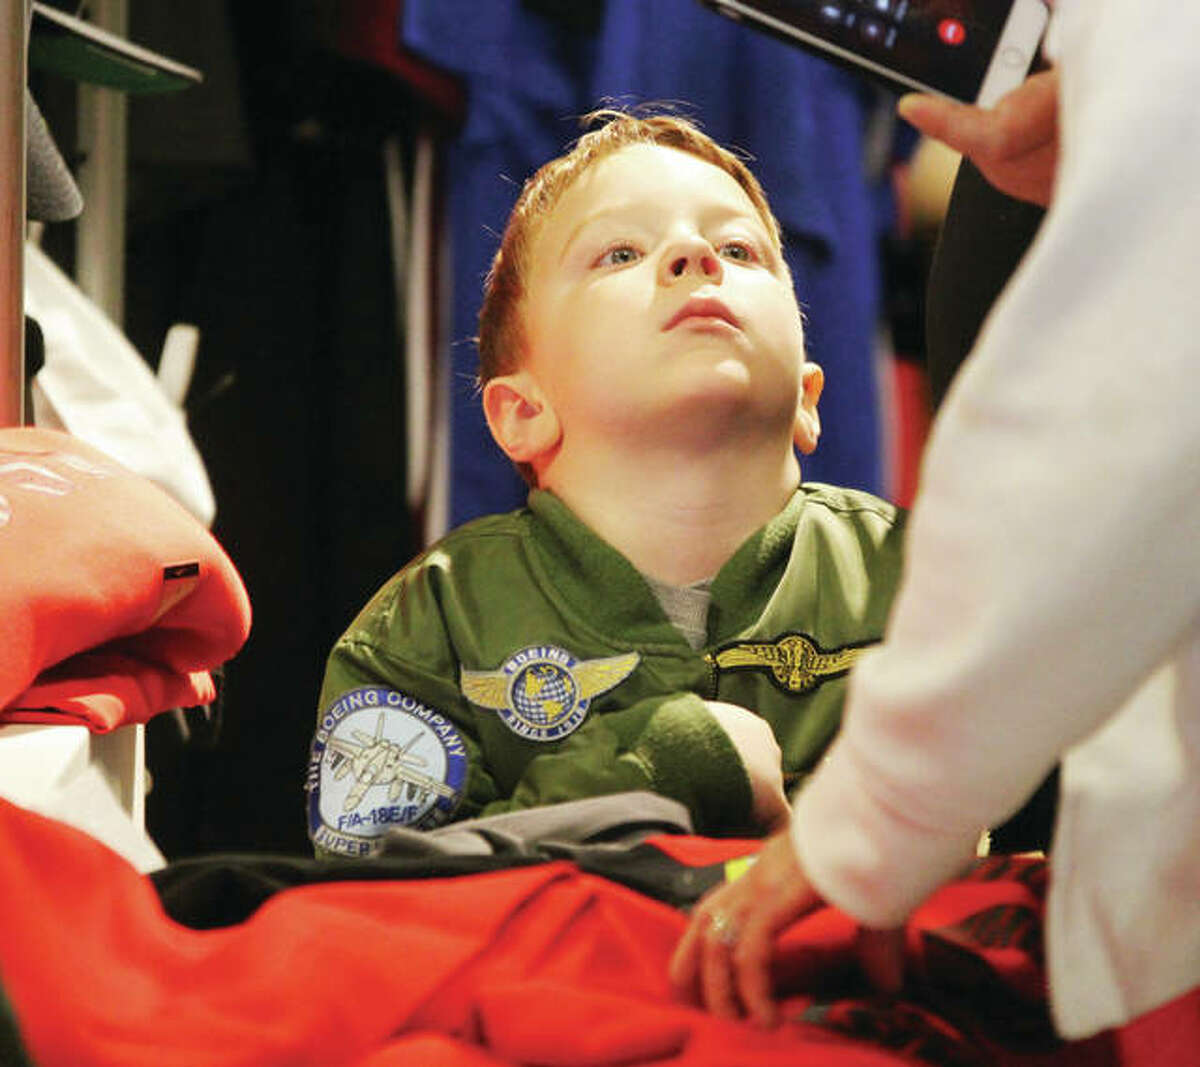 A bored Kevin Harris, 5, of Brighton, watches as his father, Ed Harris, and grandmother, Joan Harris, shop in the JC Penney store at Alton Square on Black Friday.